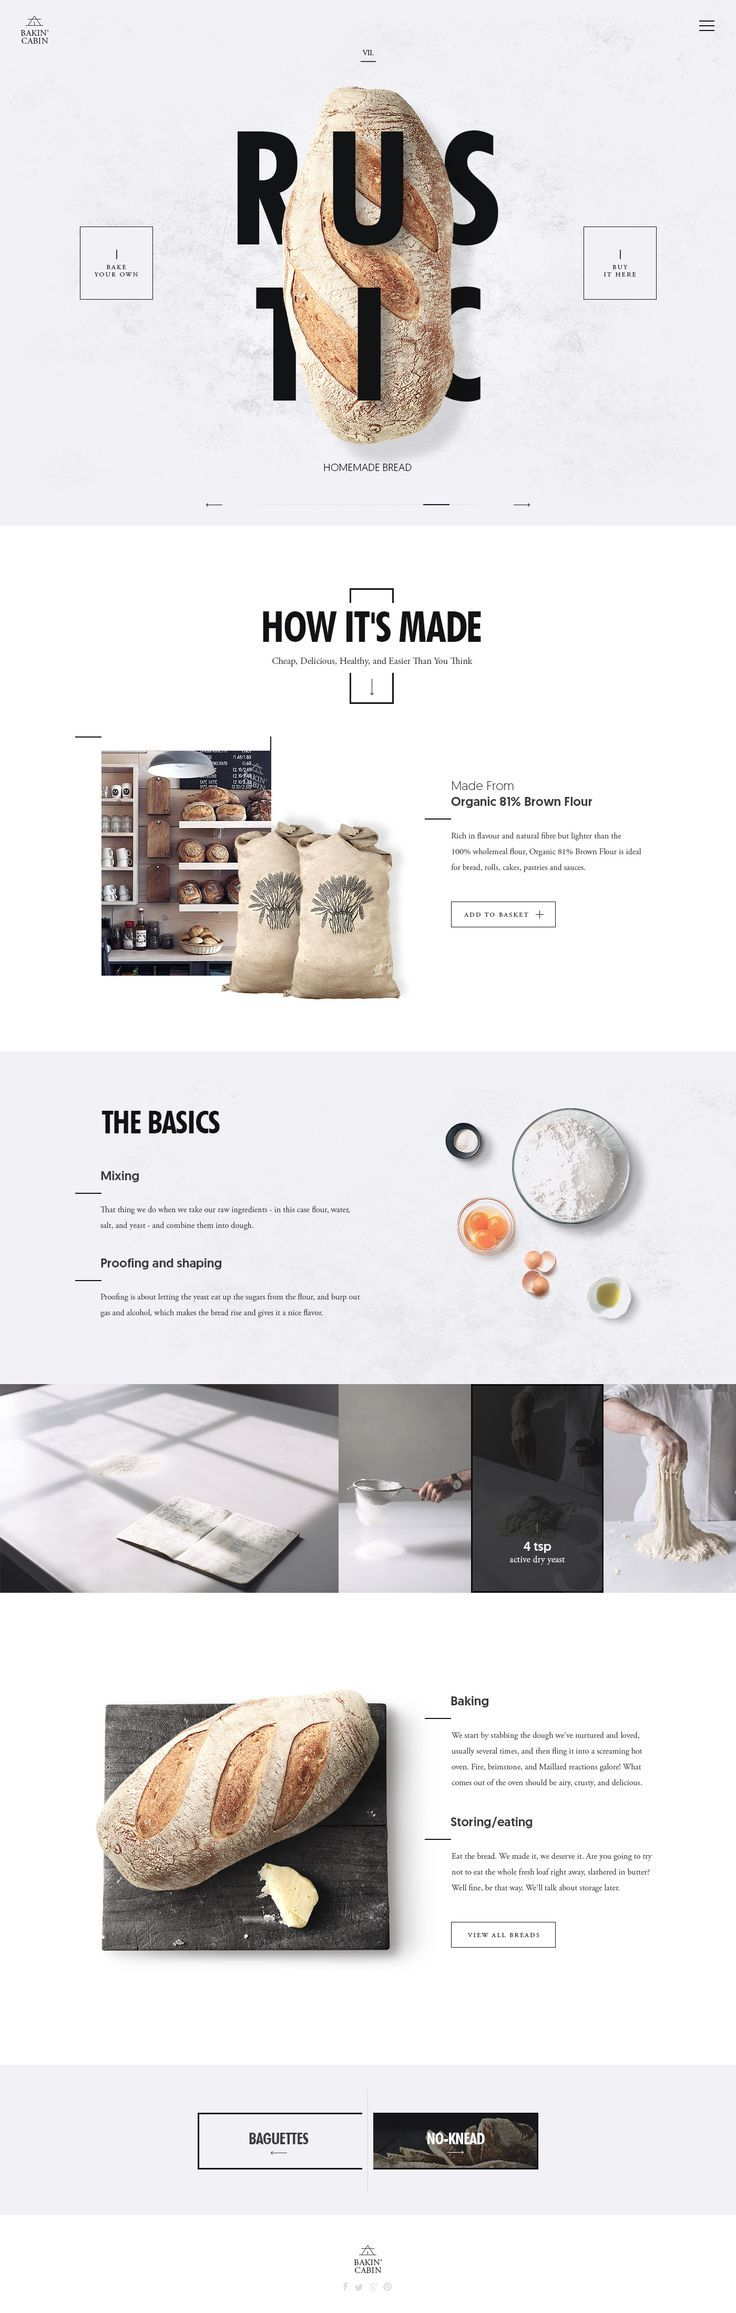 Ui concept #webdesign for a bakery project online.